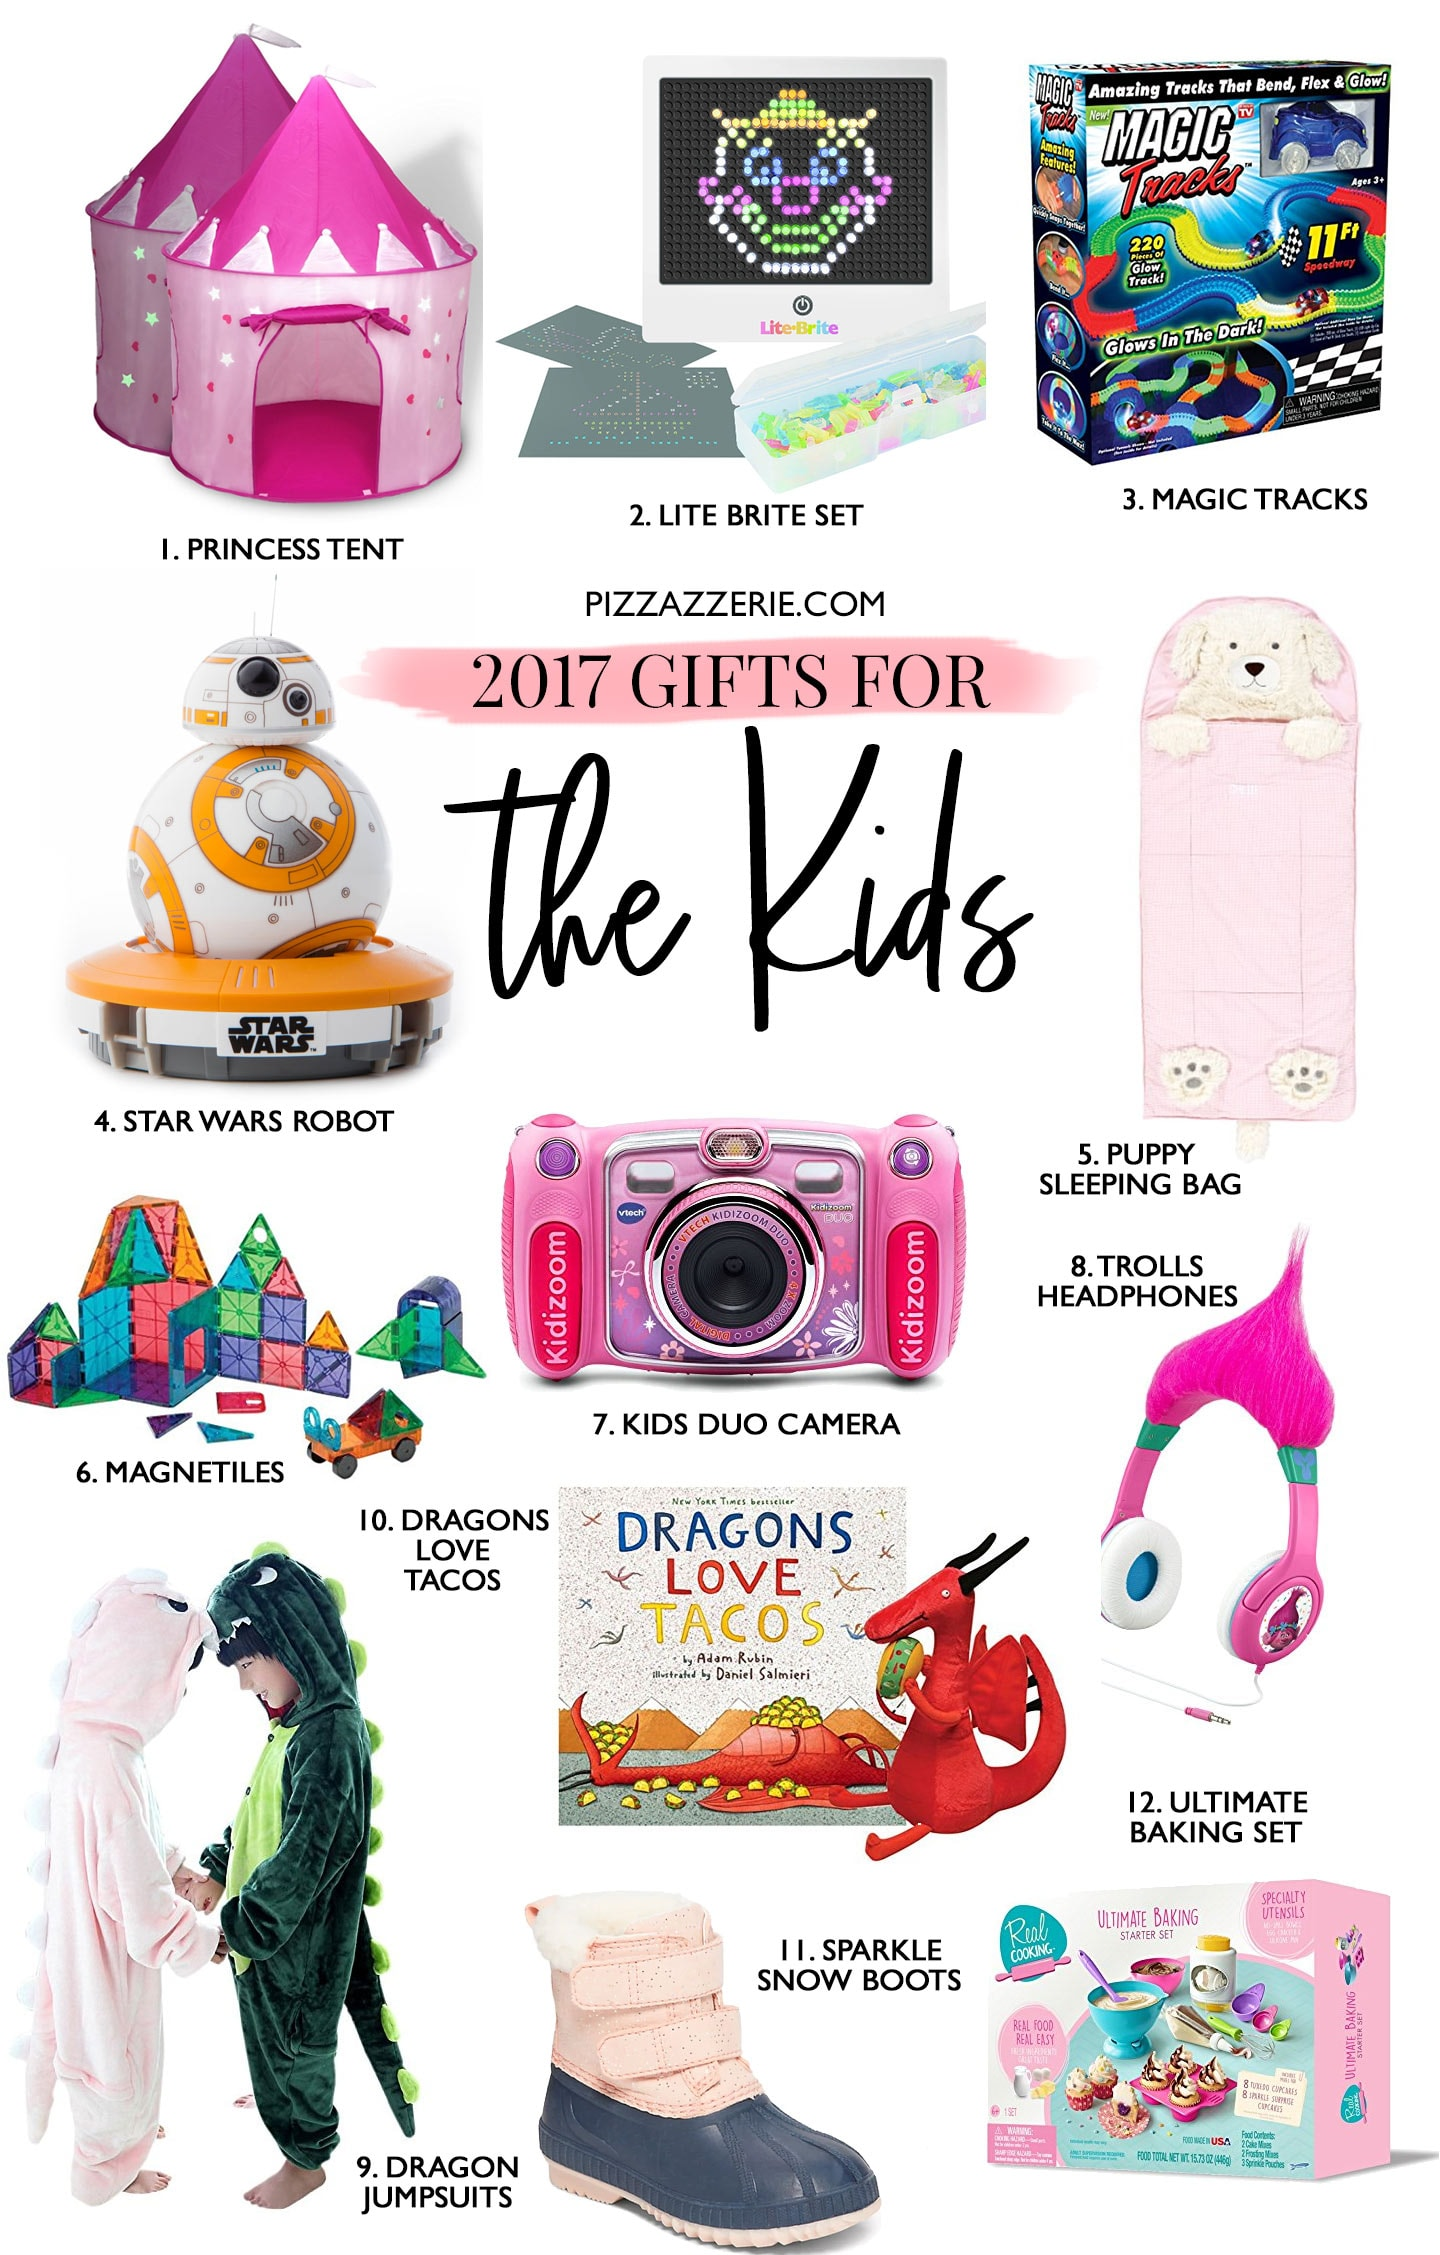 2017 Holiday Gift Guide for Hostess, Christmas, Kids, and Dog